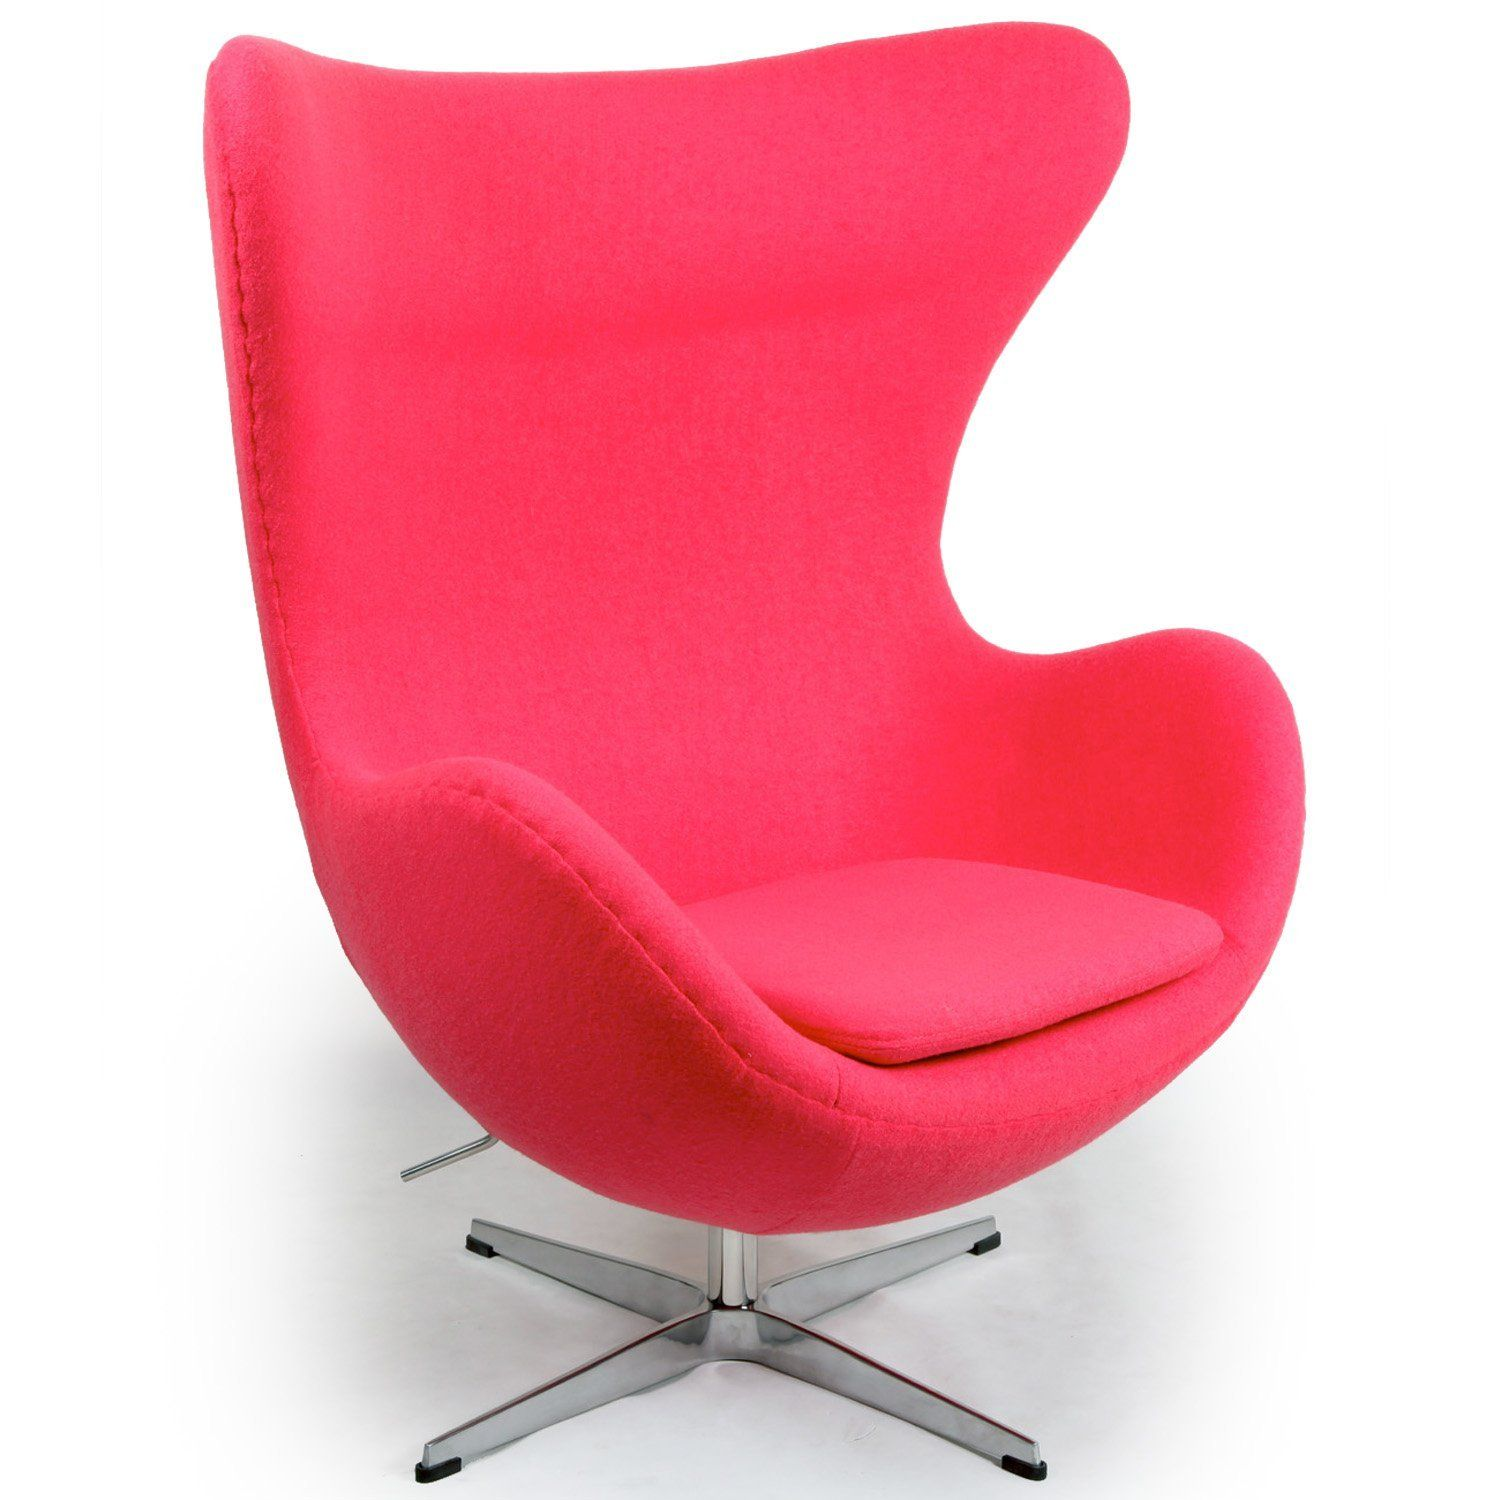 funky chairs for teens | funky pink chairs for teen girls: kardiel